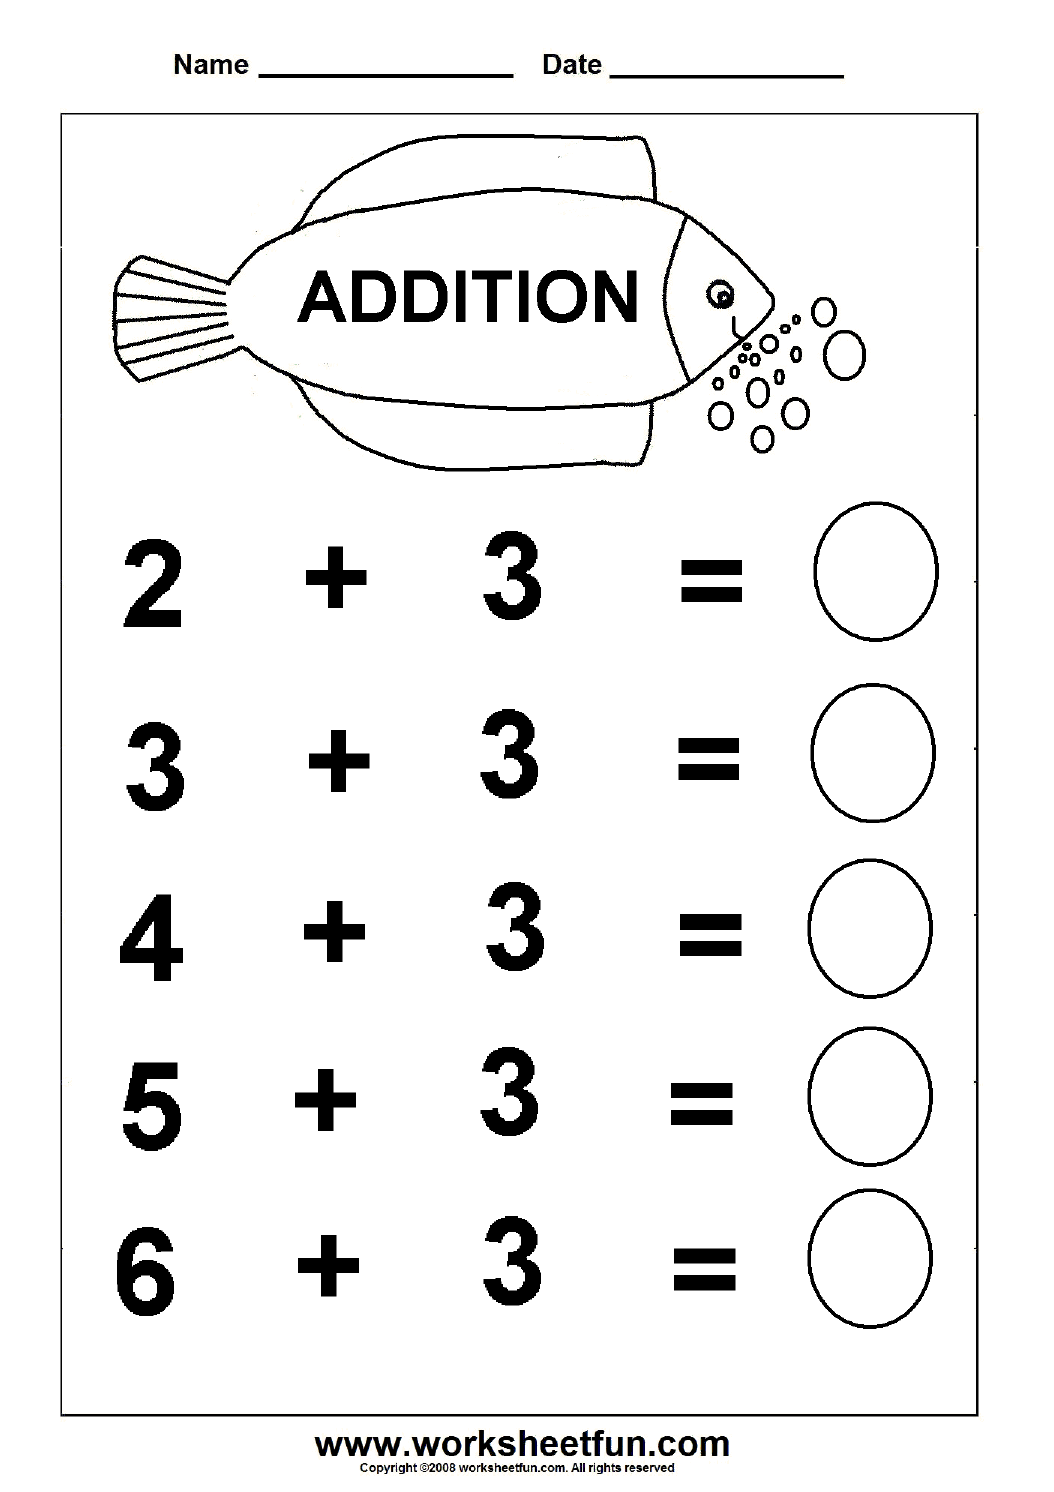 Worksheet Picture Addition Worksheets beginner addition 6 kindergarten worksheets free first grade worksheets